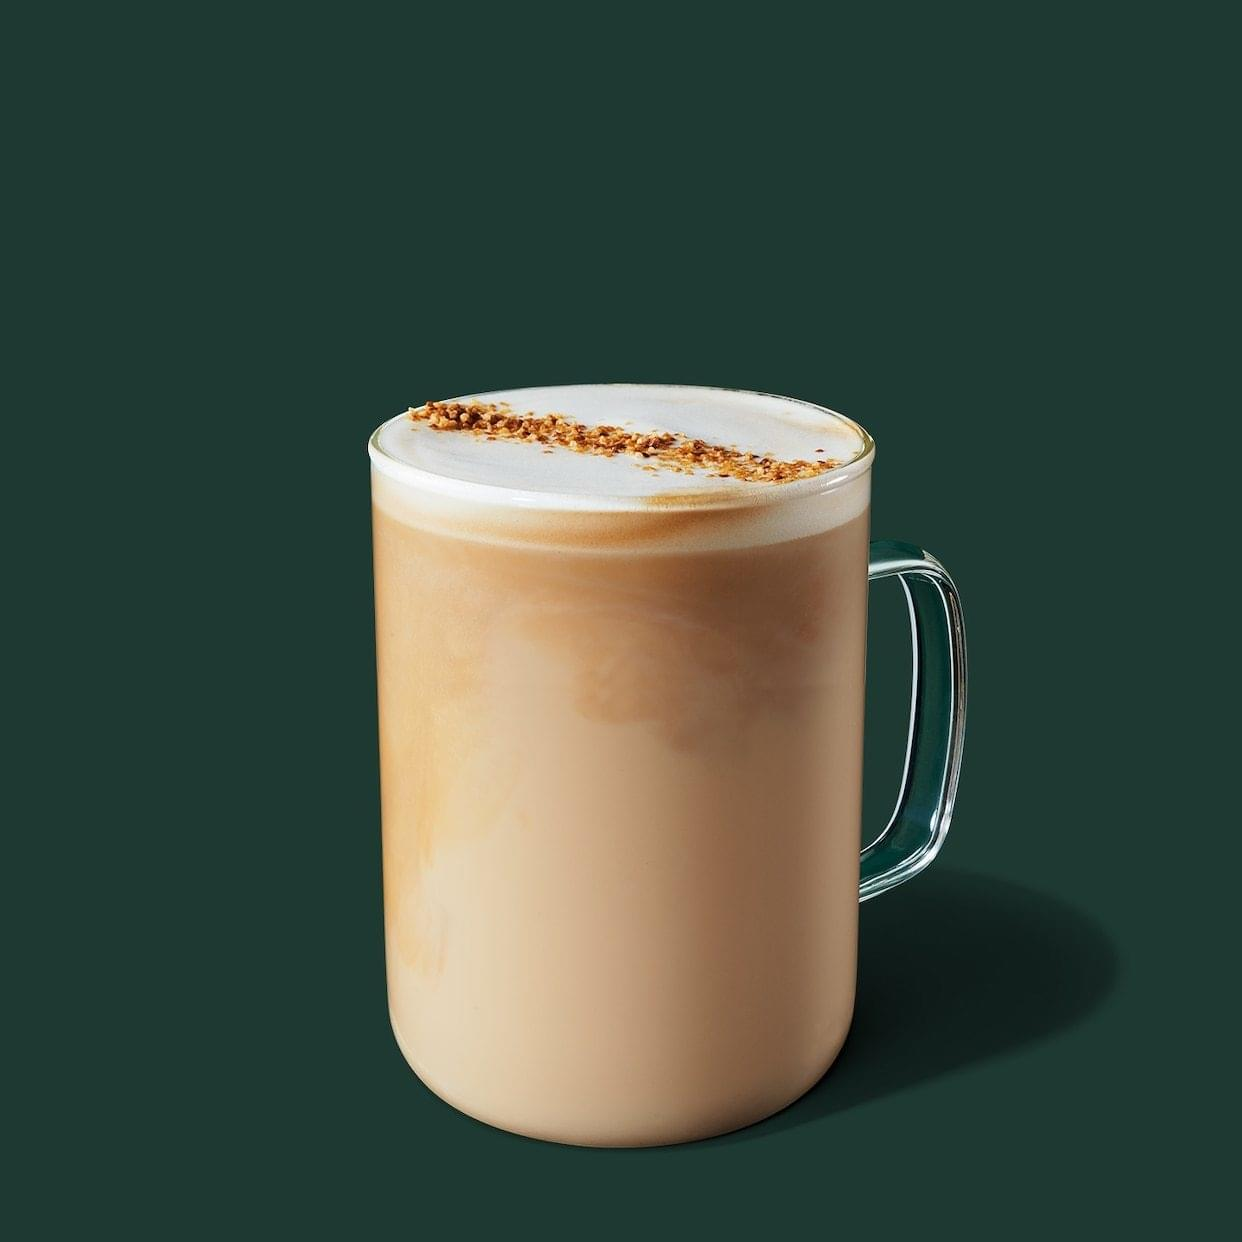 Starbucks Coconut Milk Latte Nutrition Facts